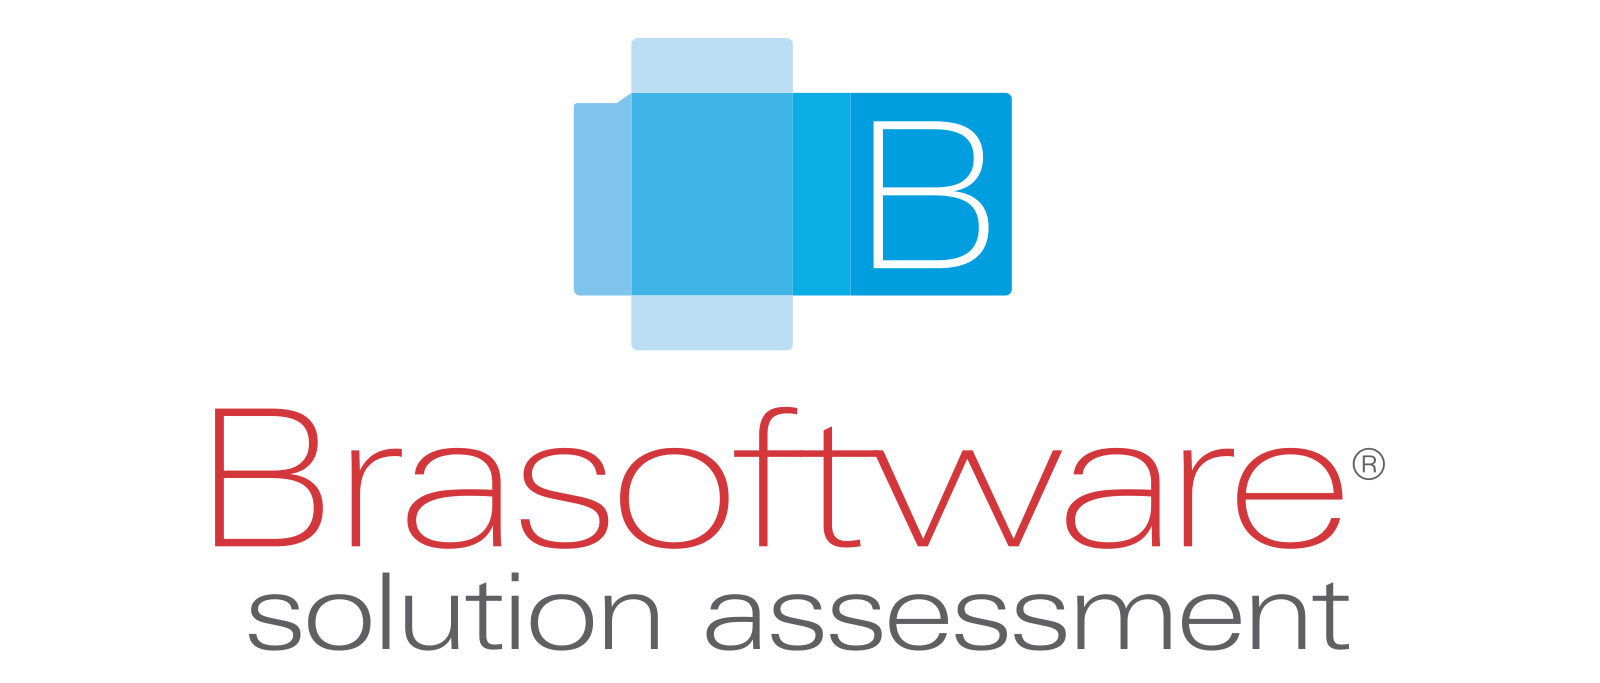 Logo Brasoftware Solution Assessment